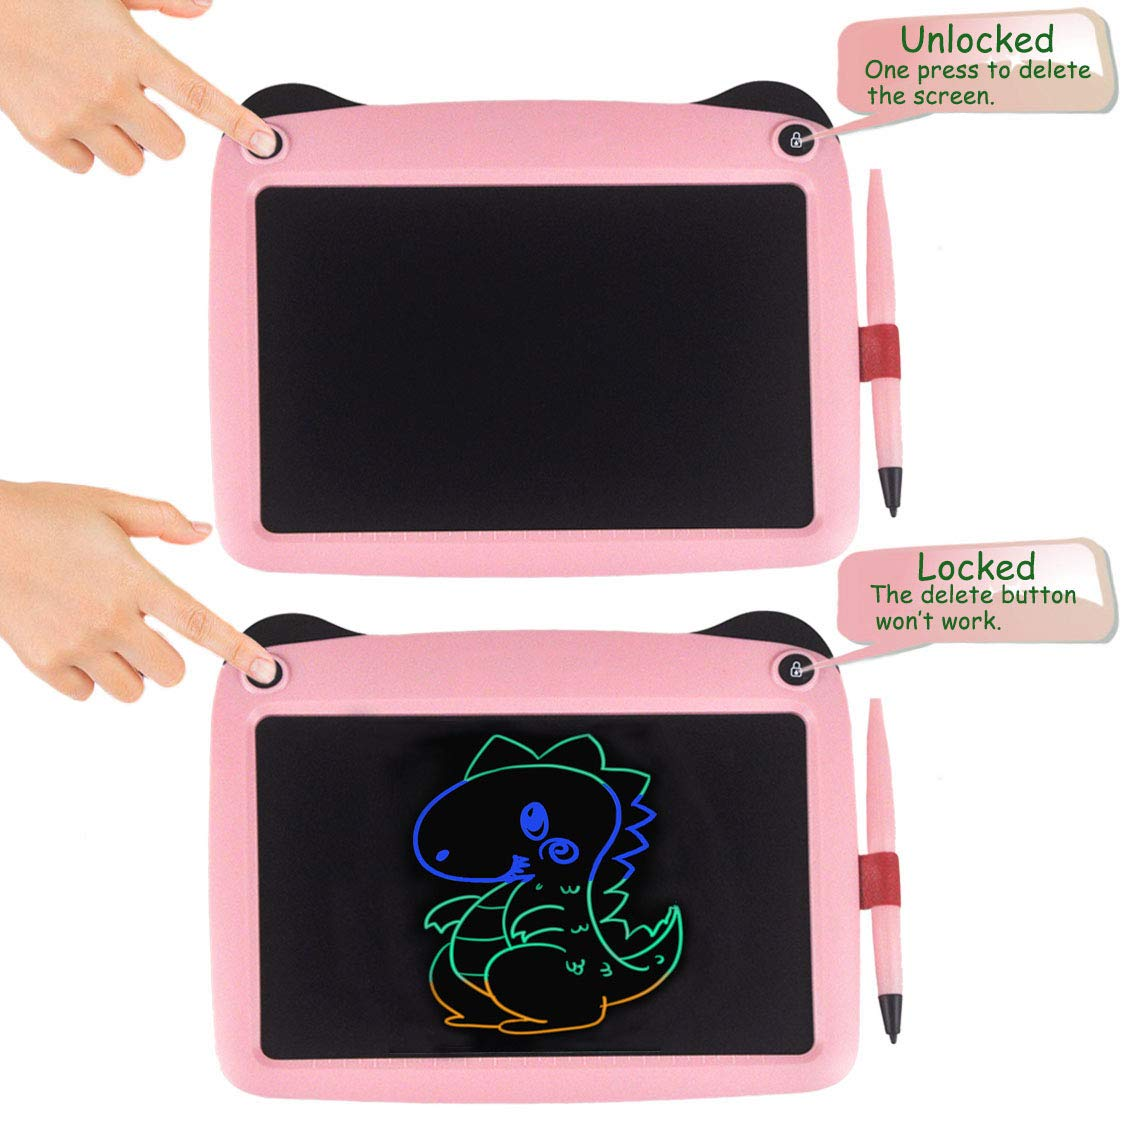 Pink-Pa 9 inch Drawing and Writing Board with Lock Erase Button for School and Office mom/&myaboys Colorful LCD Writing Tablet for Kids Toys for 3-12 Years Old Girls